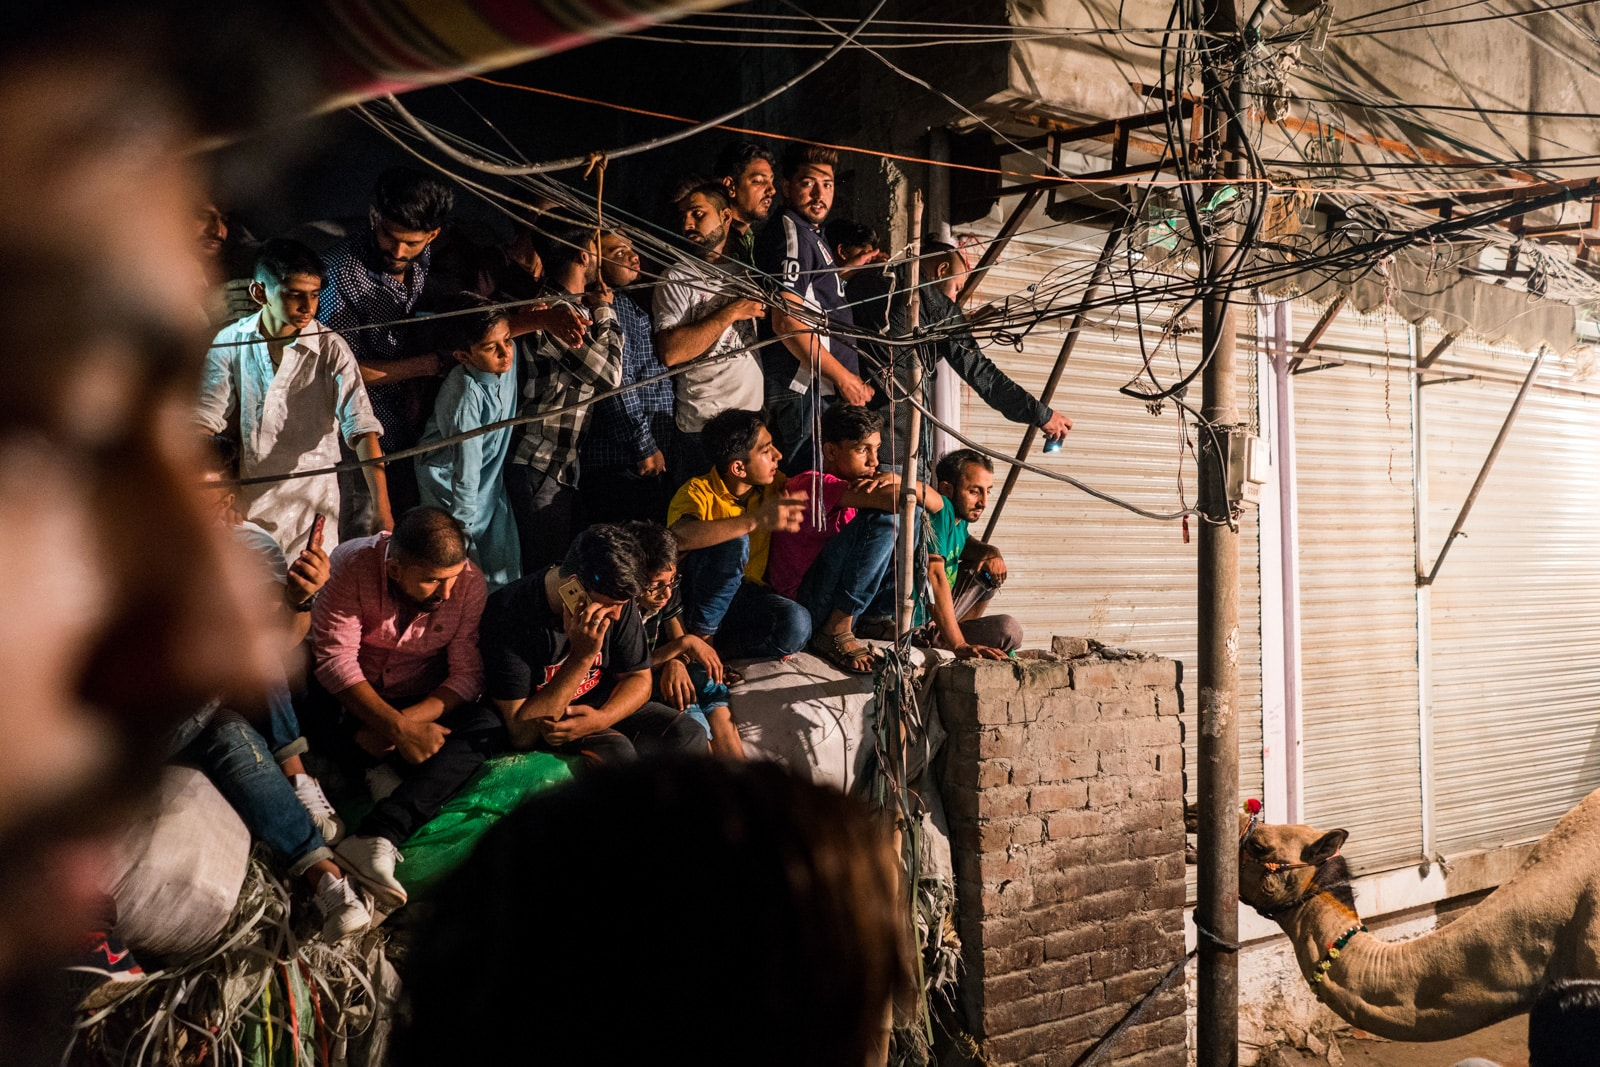 Celebrating Eid al-Adha in Lahore, Pakistan - Crowd of men watching a camel sacrifice - Lost With Purpose travel blog